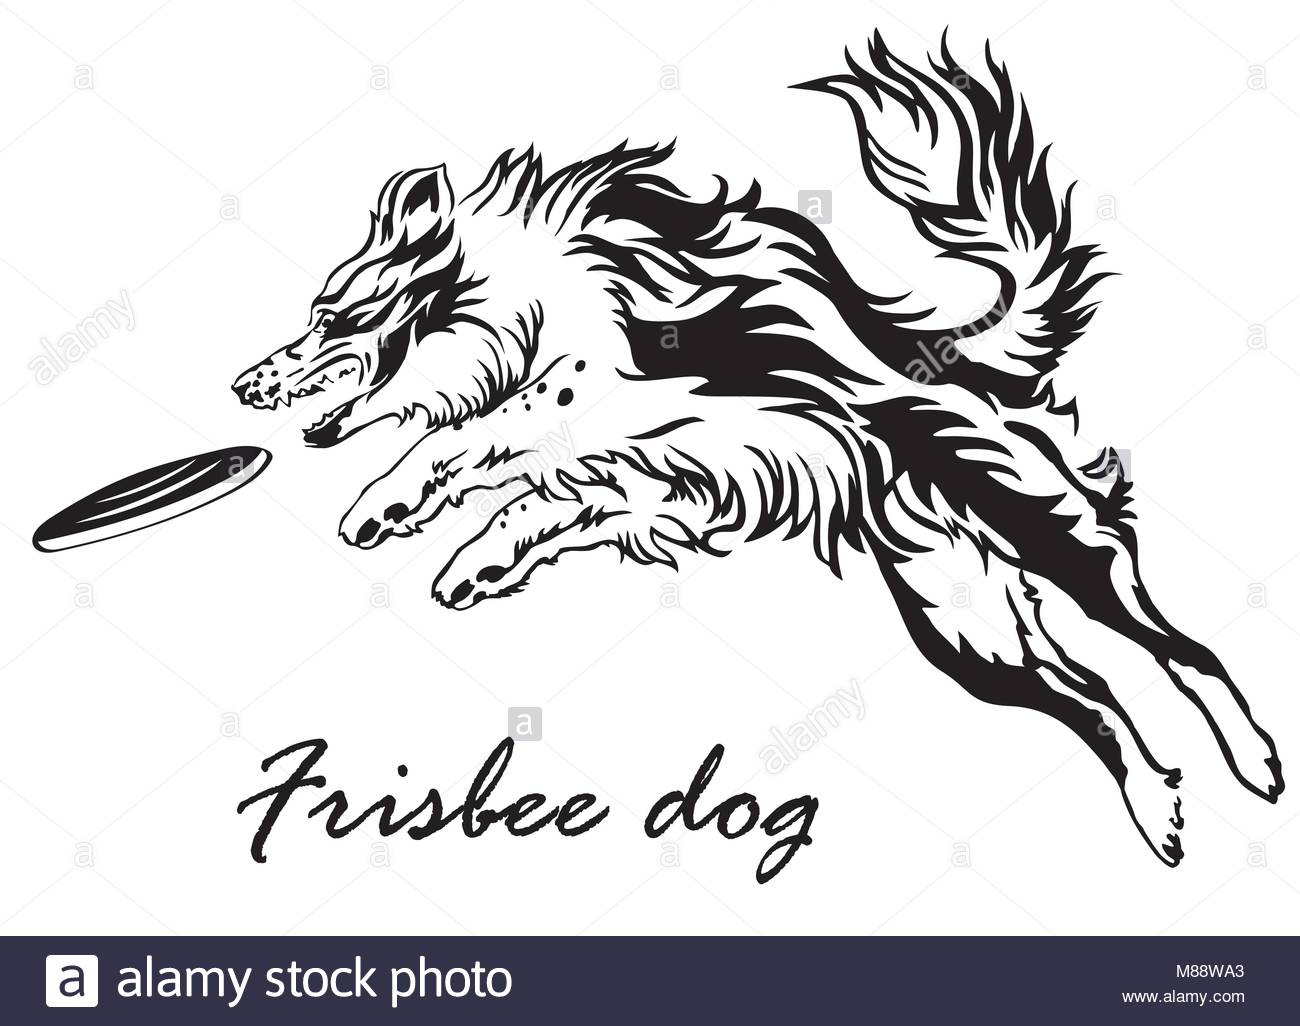 1300x1026 Border Collie Stock Vector Images